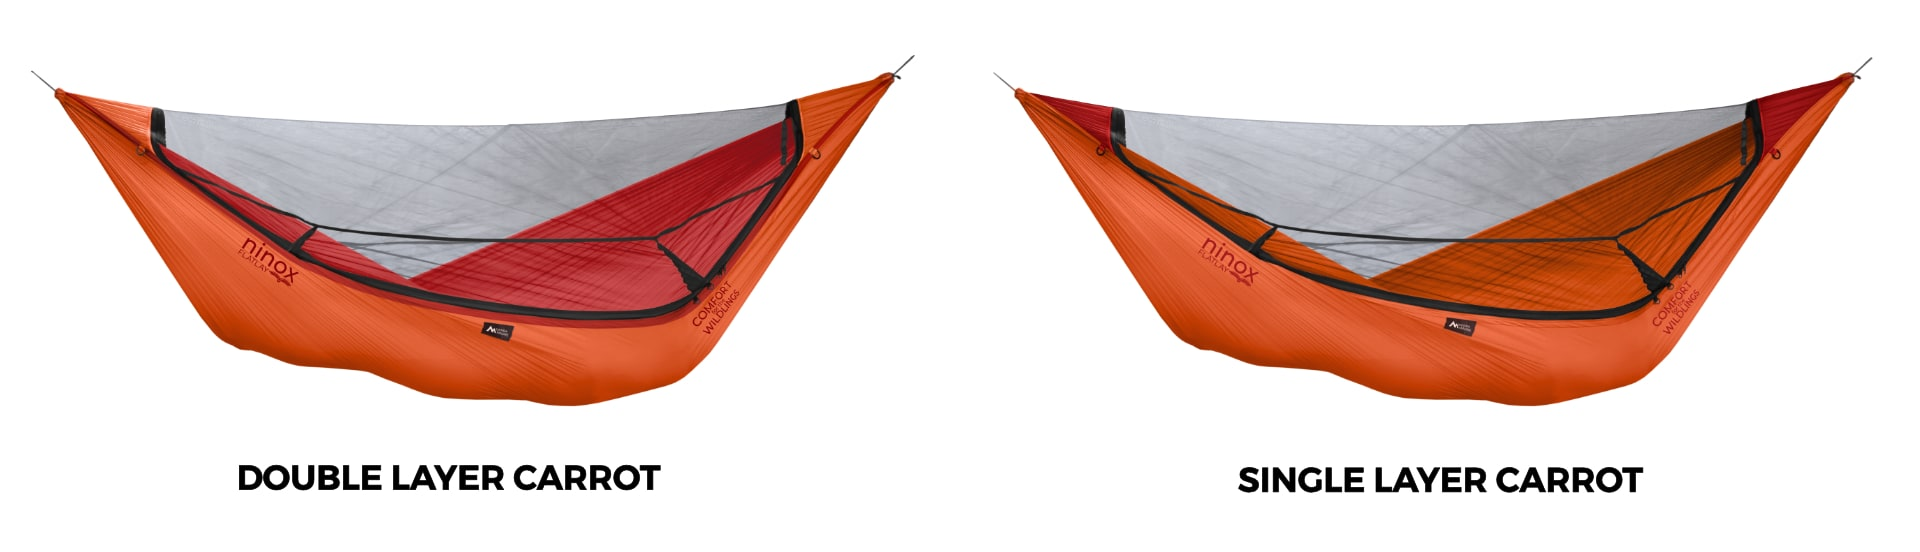 Ninox Double Layer vs. Single Layer Hammock in Carrot!